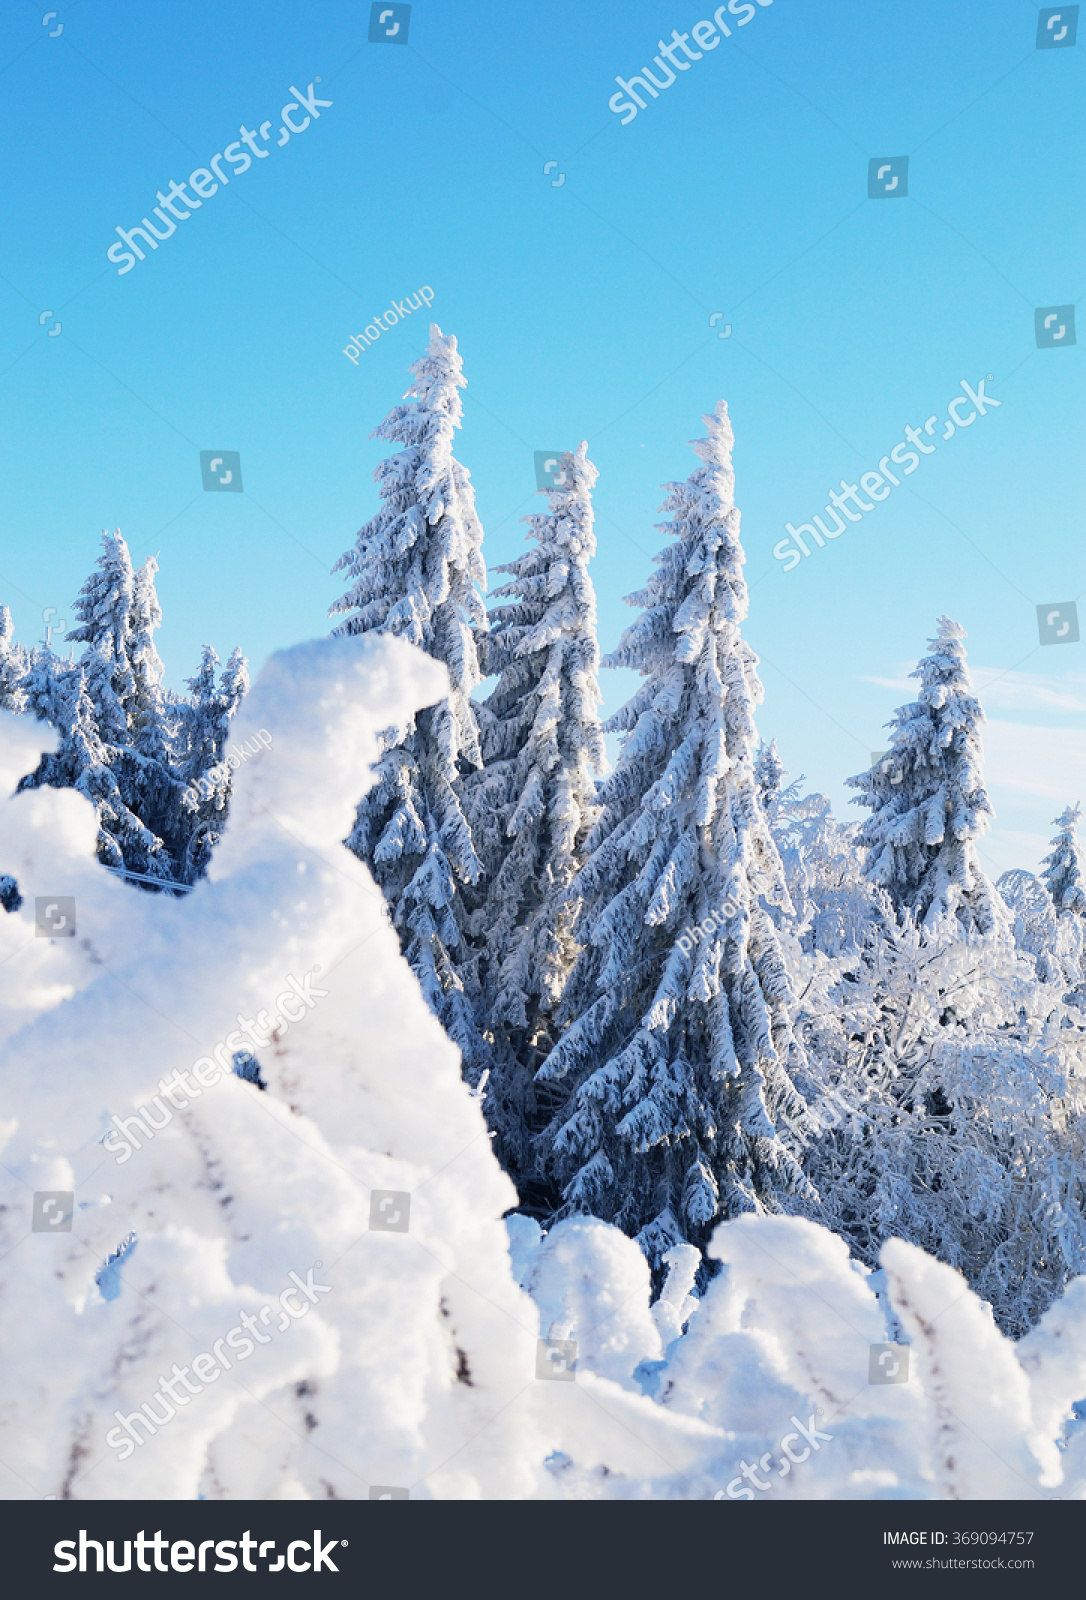 Snowy Mountain Landscape Stock Photo 369094757 : Shutterstock